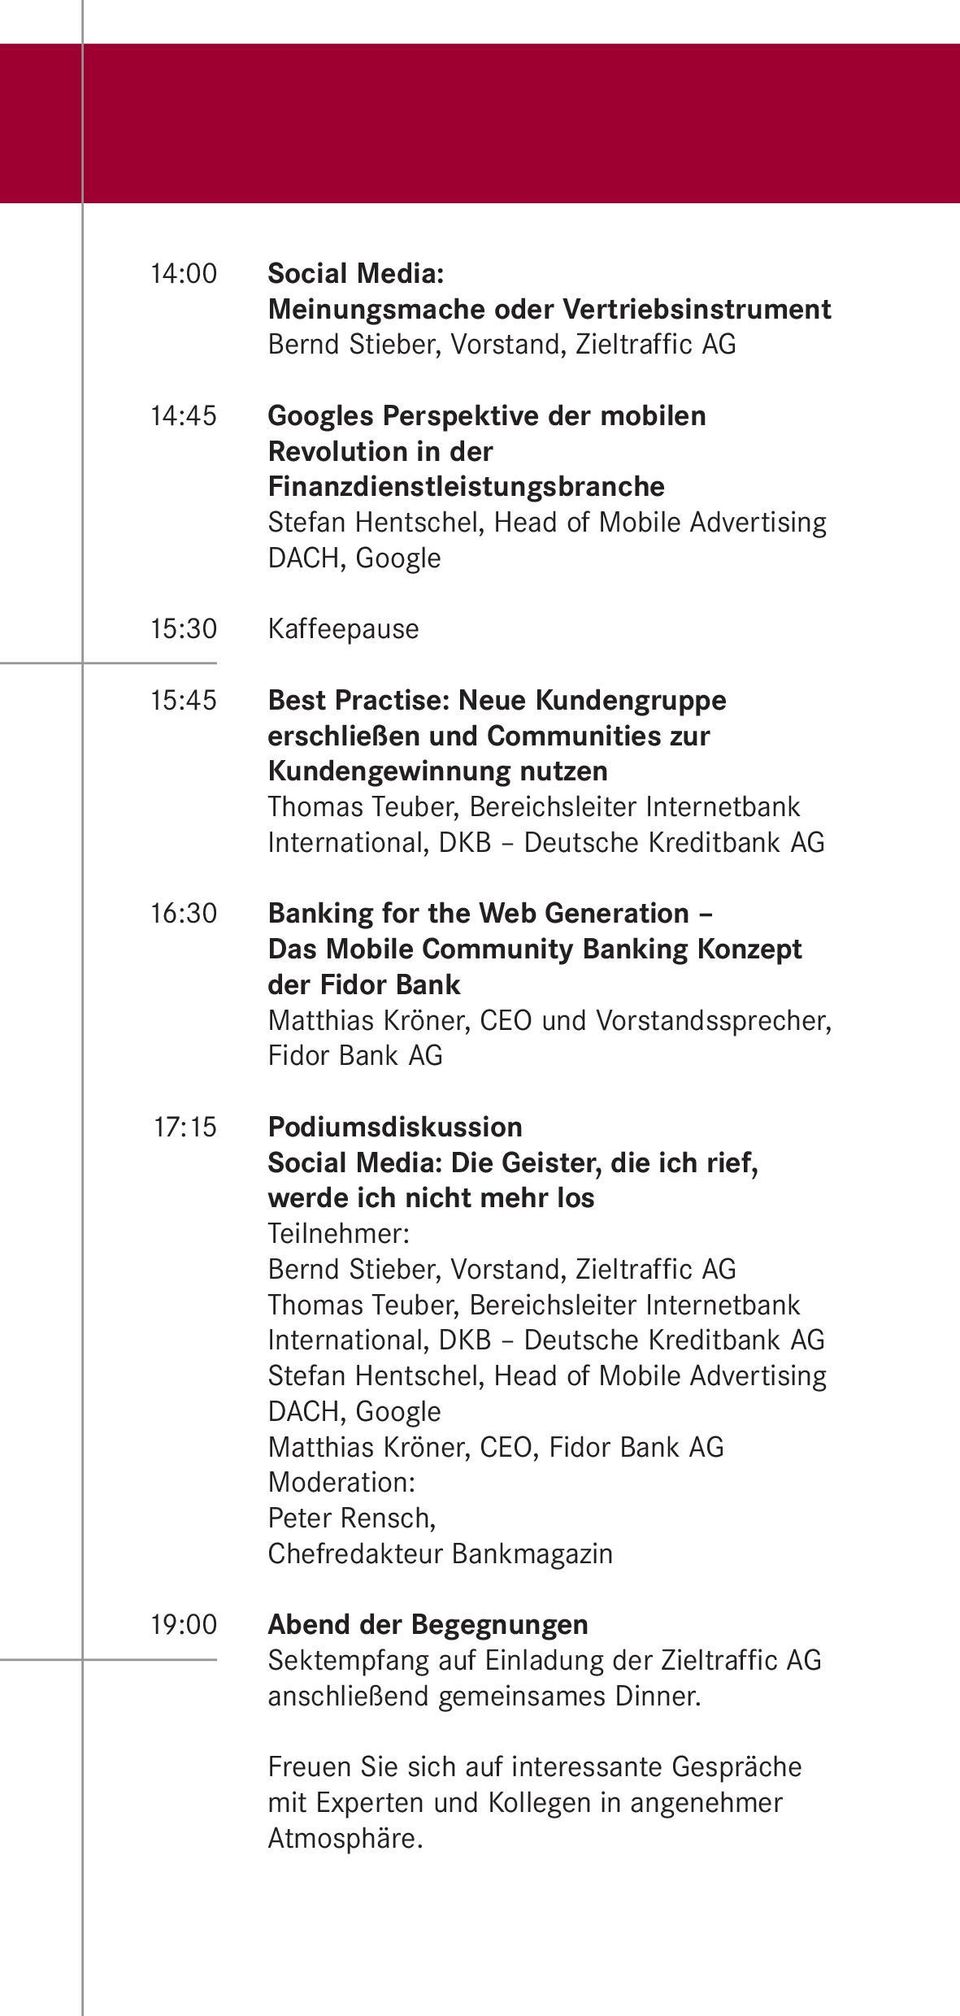 Internetbank International, DKB Deutsche Kreditbank AG 16:30 Banking for the Web Generation Das Mobile Community Banking Konzept der Fidor Bank Matthias Kröner, CEO und Vorstandssprecher, Fidor Bank